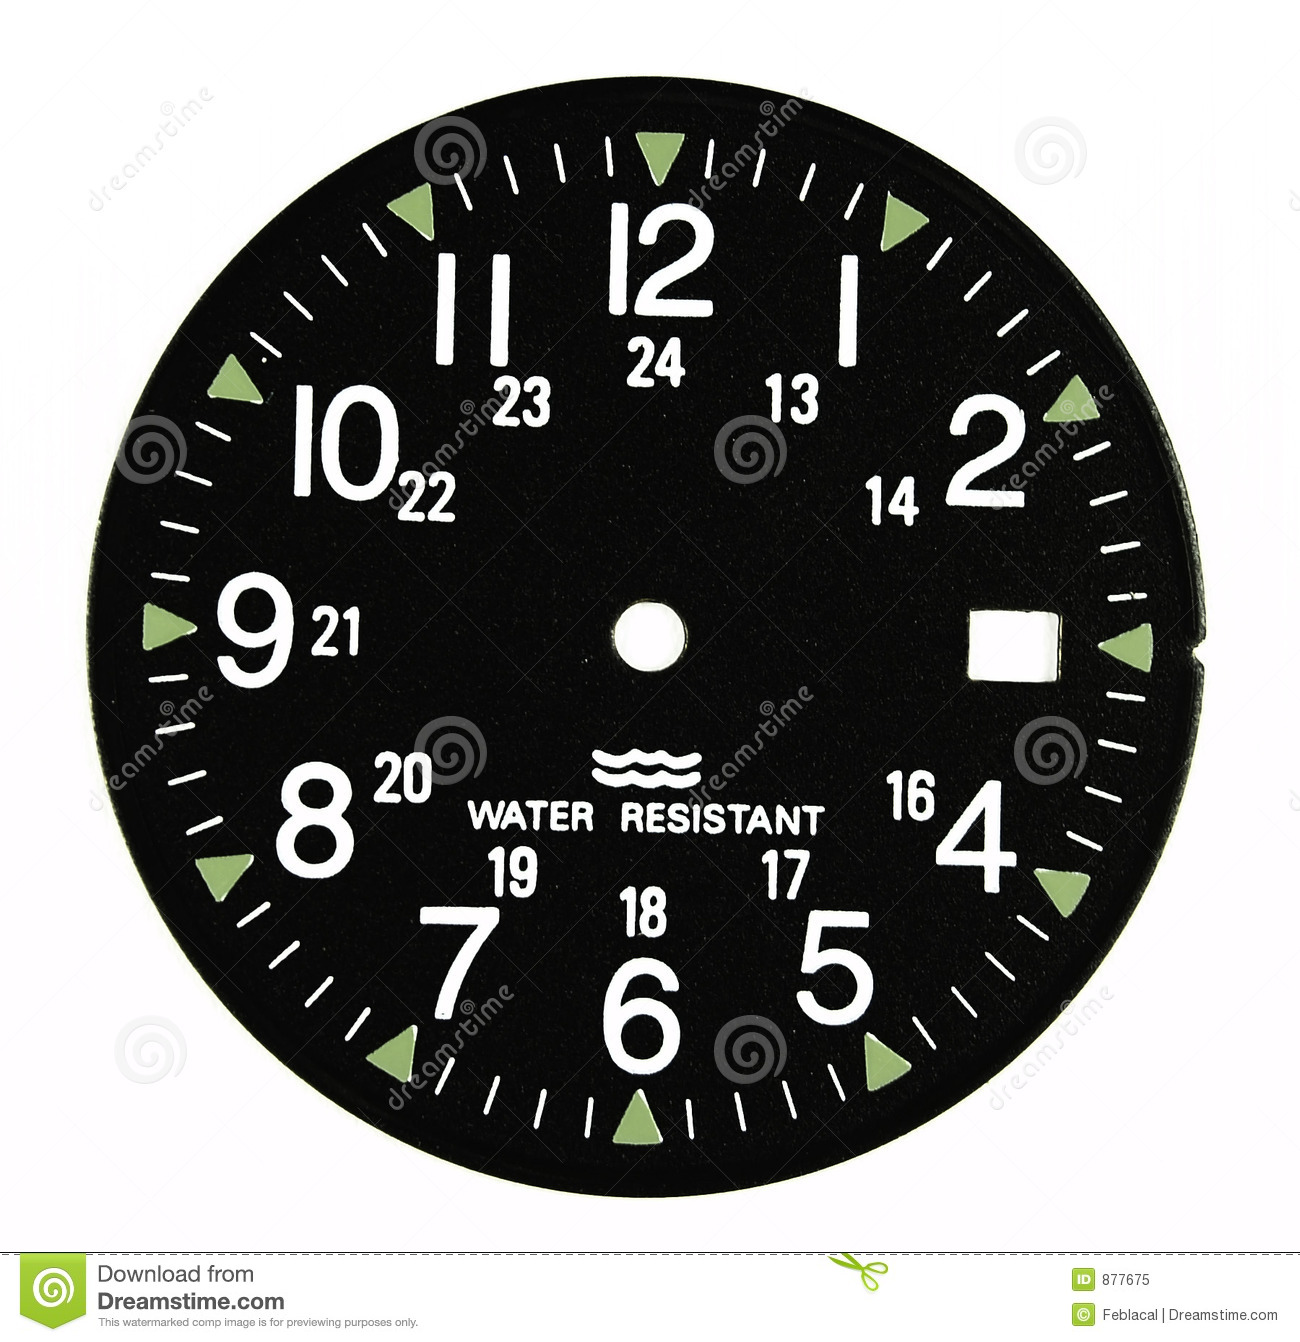 how to find military time